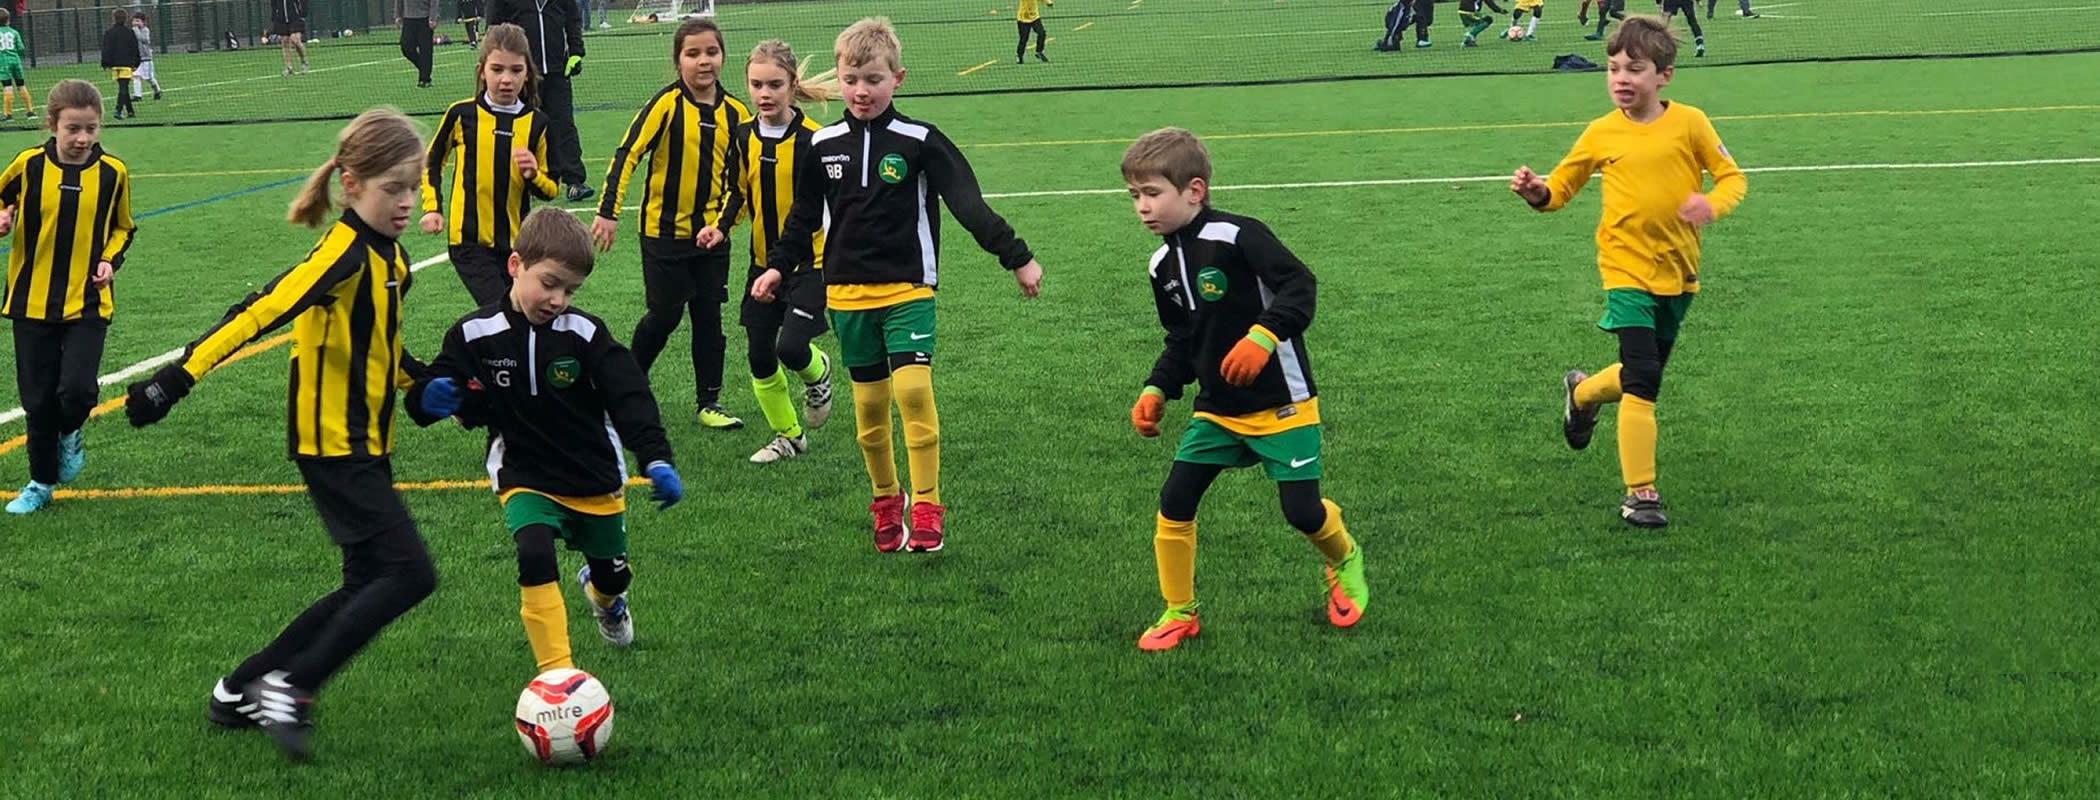 Mini Soccer - ...For 4 to 10 Year Old Future Stars